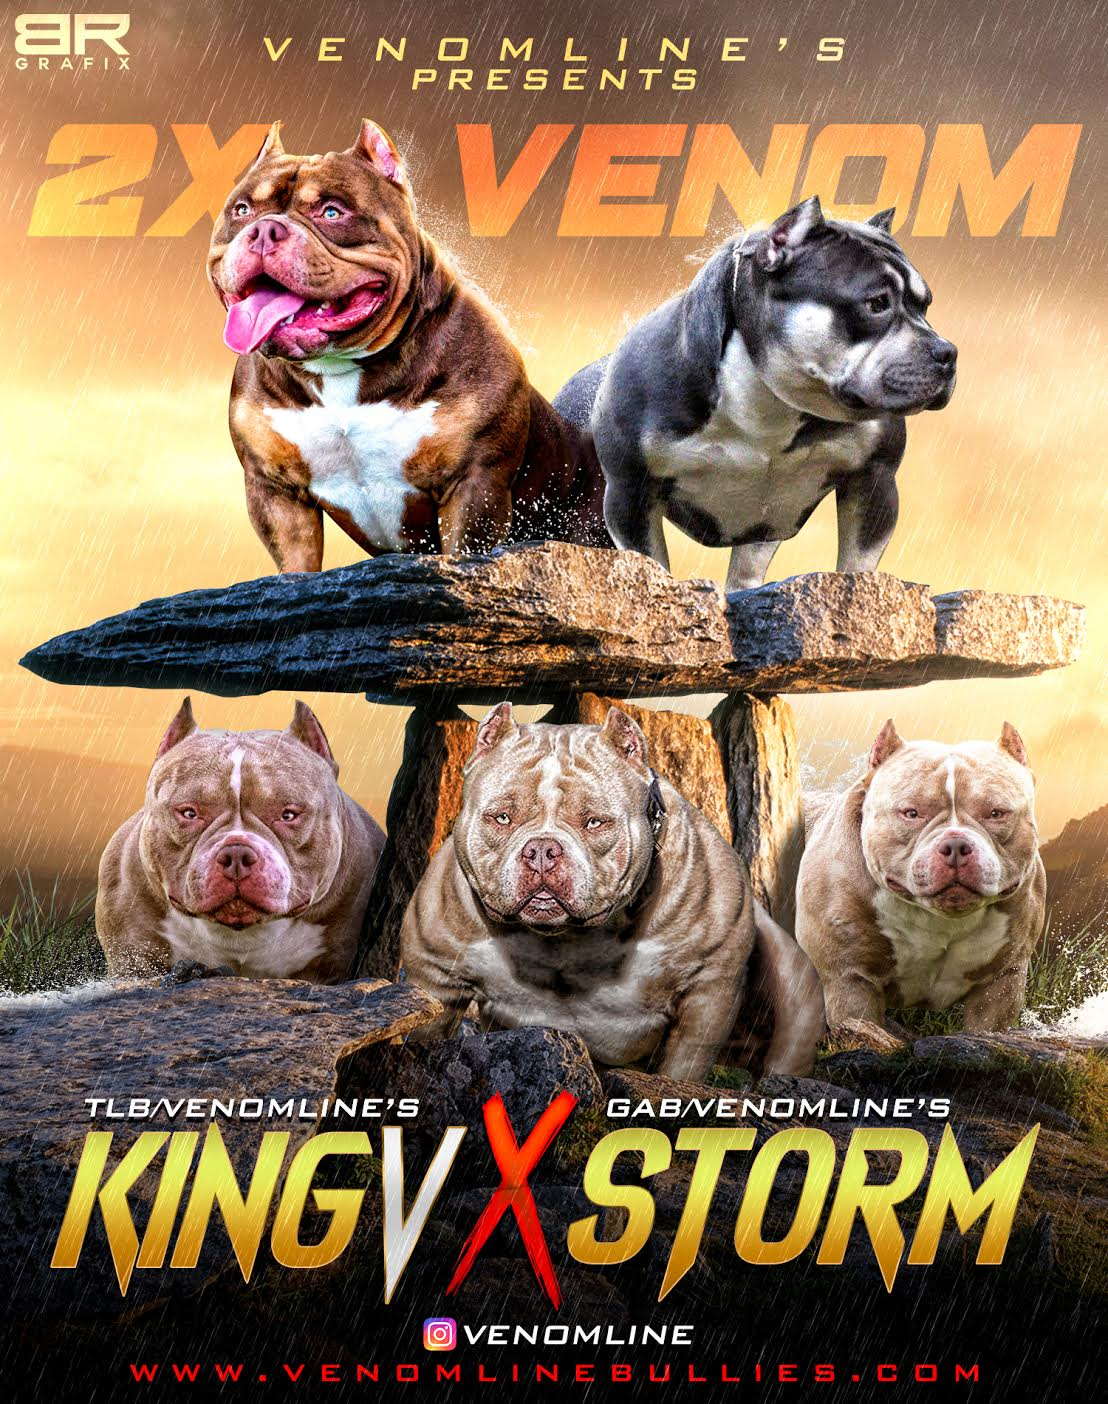 Pocket American Bully Puppies for Sale, Extreme Pocket Bully, Venomline, American Bully Kennels, Best Pocket Bully Kennels, Pocket Bully Breeders, Pocket Bully Kennels, Top American Bully Breeders, Best Bully Bloodlines